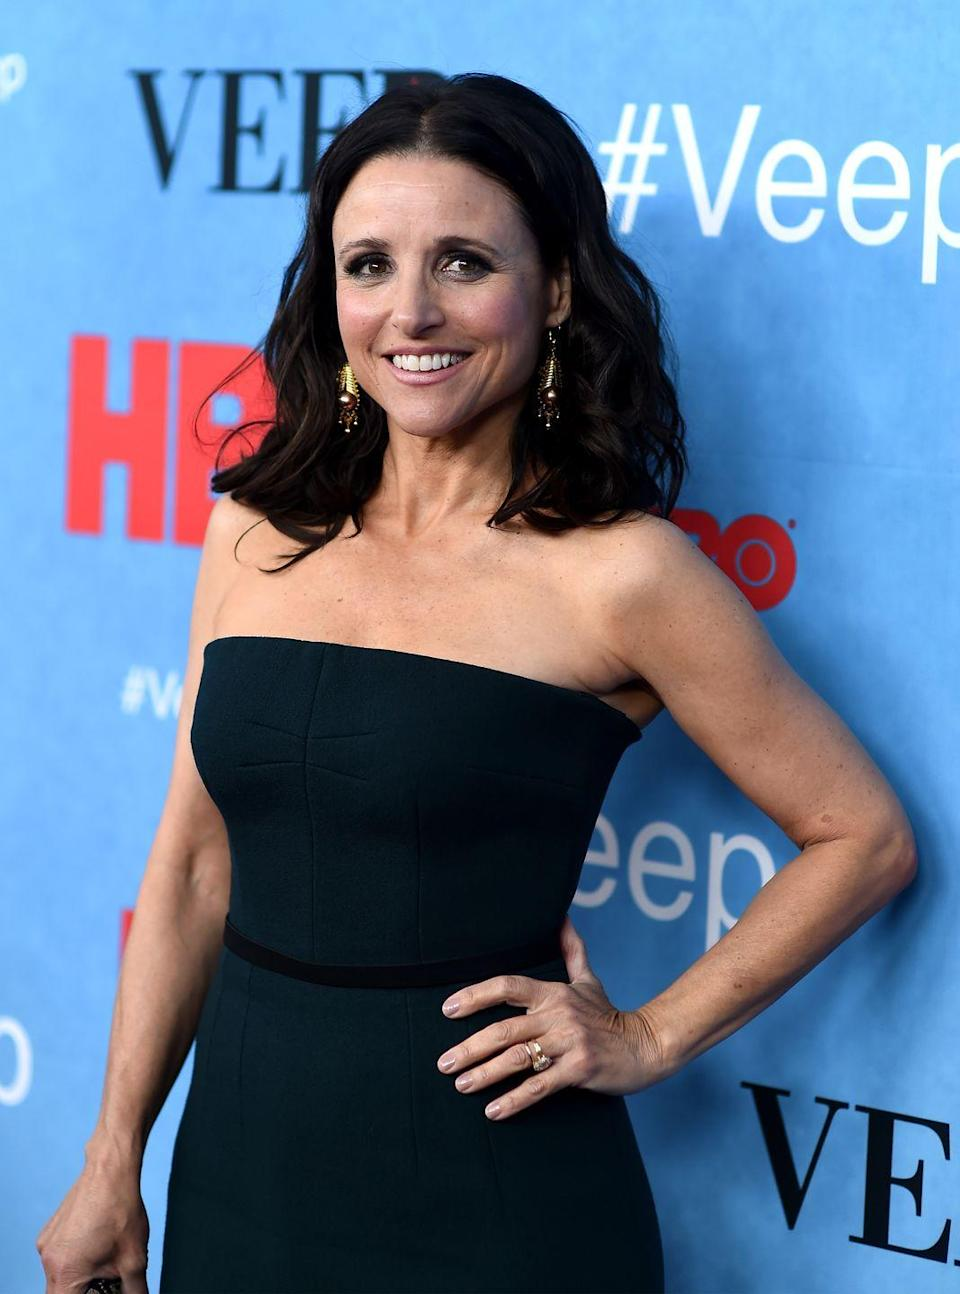 <p>Louis-Dreyfus's last year on <em>SNL</em> coincided with writer Larry David's first and only year writing for the show. The two became friends, and five years later David convinced her to join the cast of the new sitcom he was working on with Jerry Seinfeld. Her roles on <em>Seinfeld</em>, <em>The New Adventur</em><em>es of Old Christine</em>, and <em>Veep</em> have resulted in 11 Emmy wins. In 2018, Louis-Dreyfus received the Mark Twain Prize for American Humor.</p>